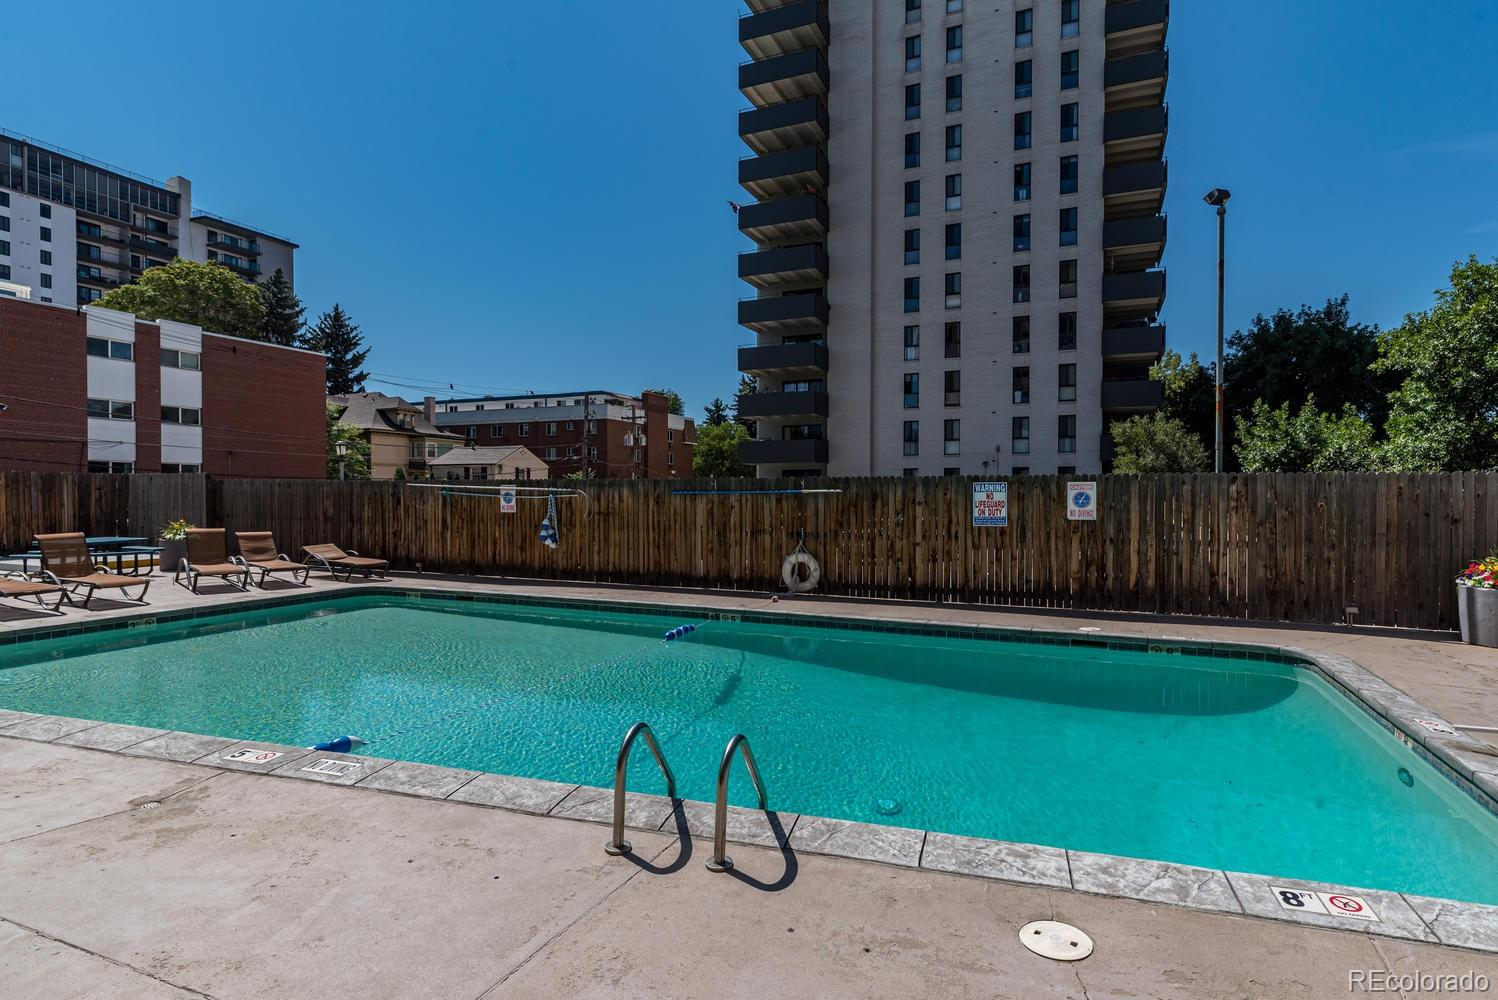 MLS# 6692685 - 888 N Logan Street #11F, Denver, CO 80203